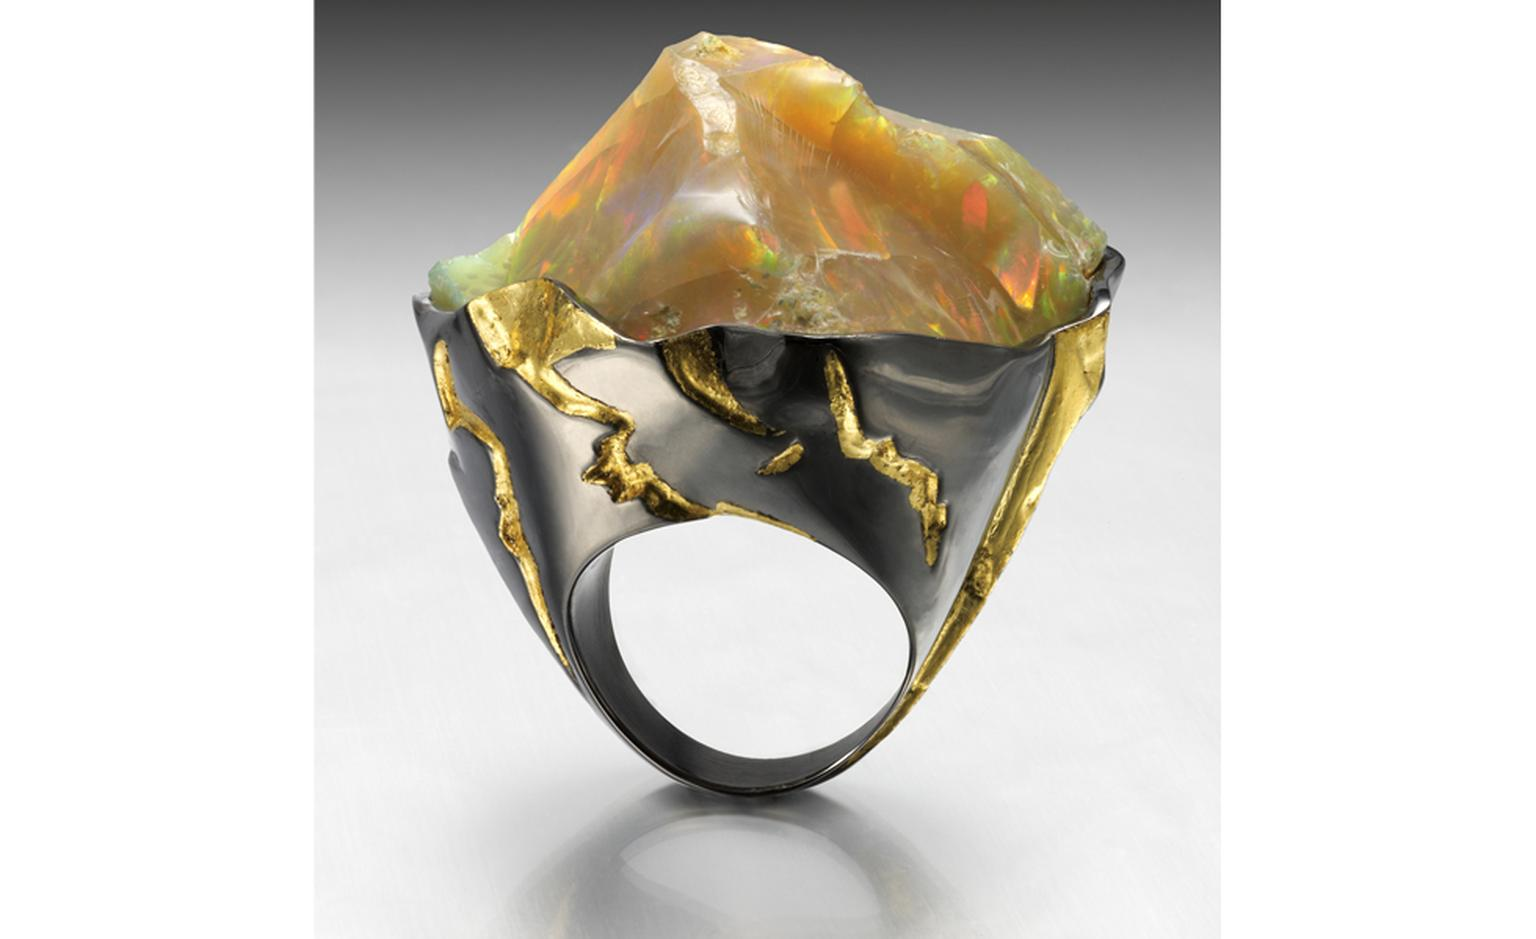 Ornella Iannuzzi: Mount Zion Ring. Made from a 65 cts rough Wello opal set in black silver and decorated with 24ct gold leaves. Unique piece. Model pictured sold - on commission from £2,500.